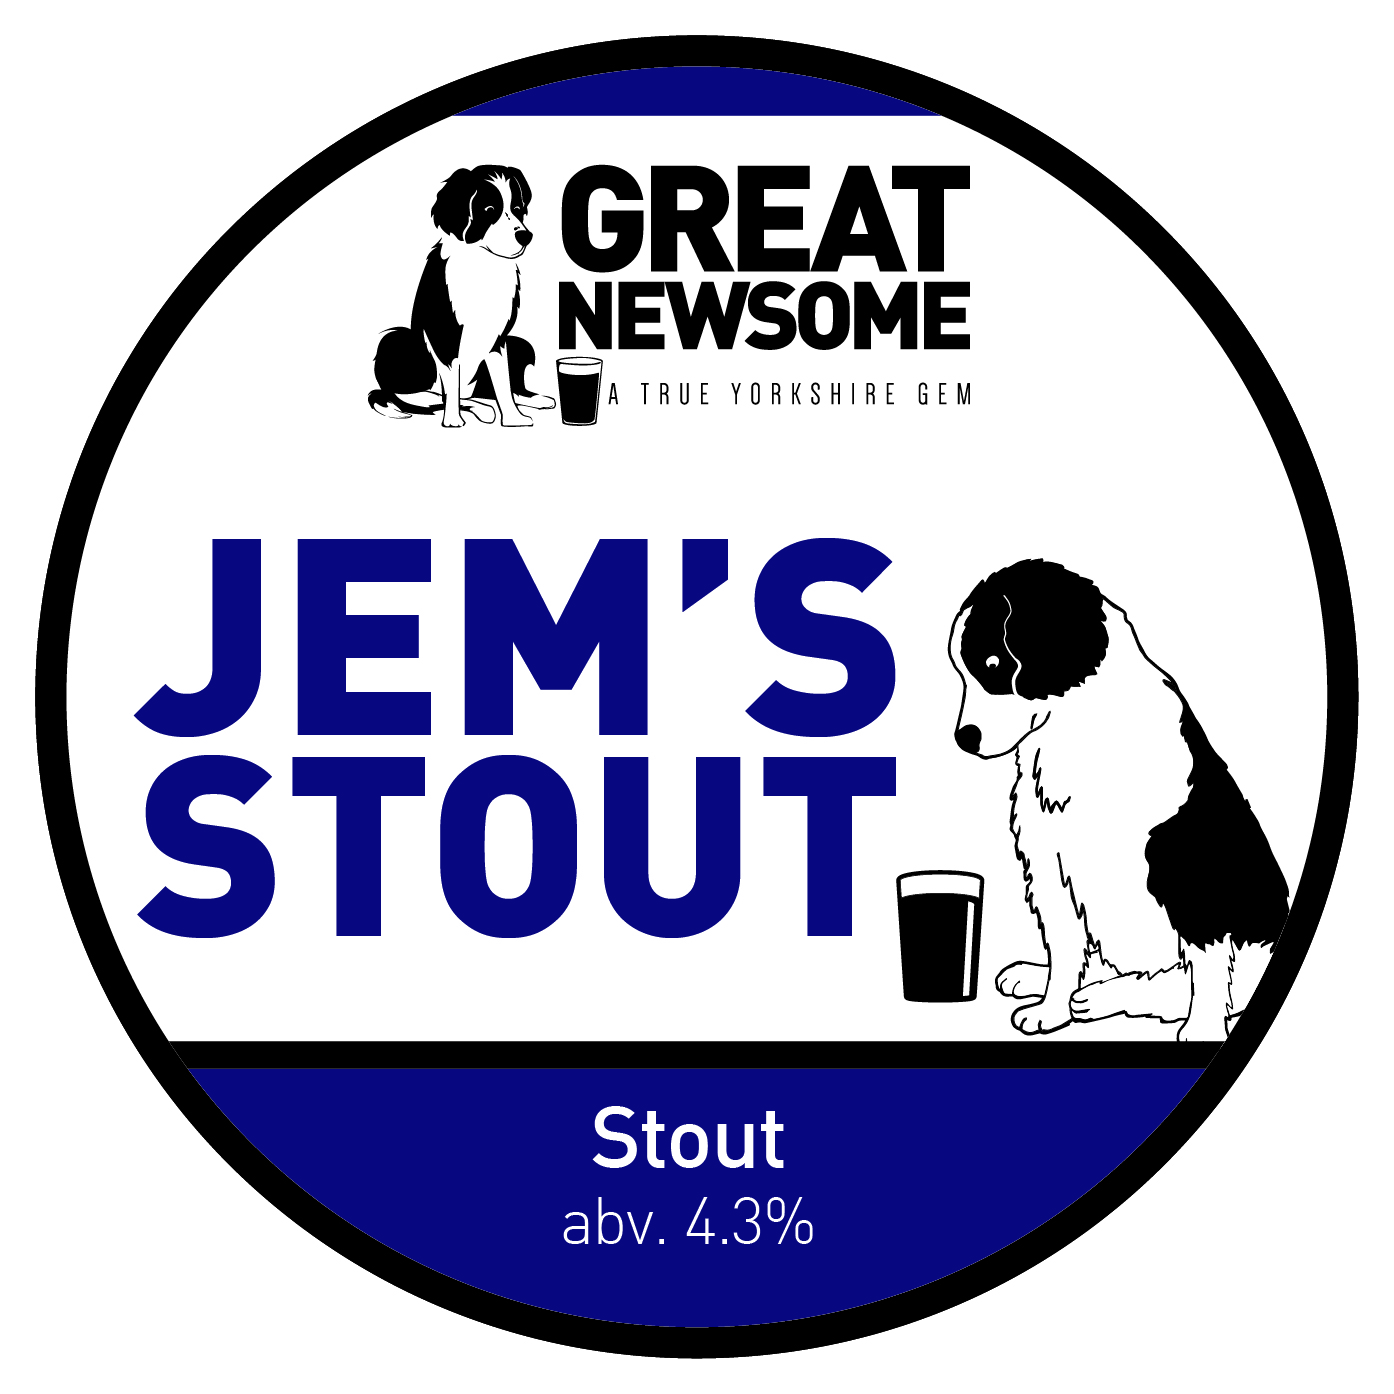 Jem the dog branding on Great Newsome's Jem's Stout pump clip.